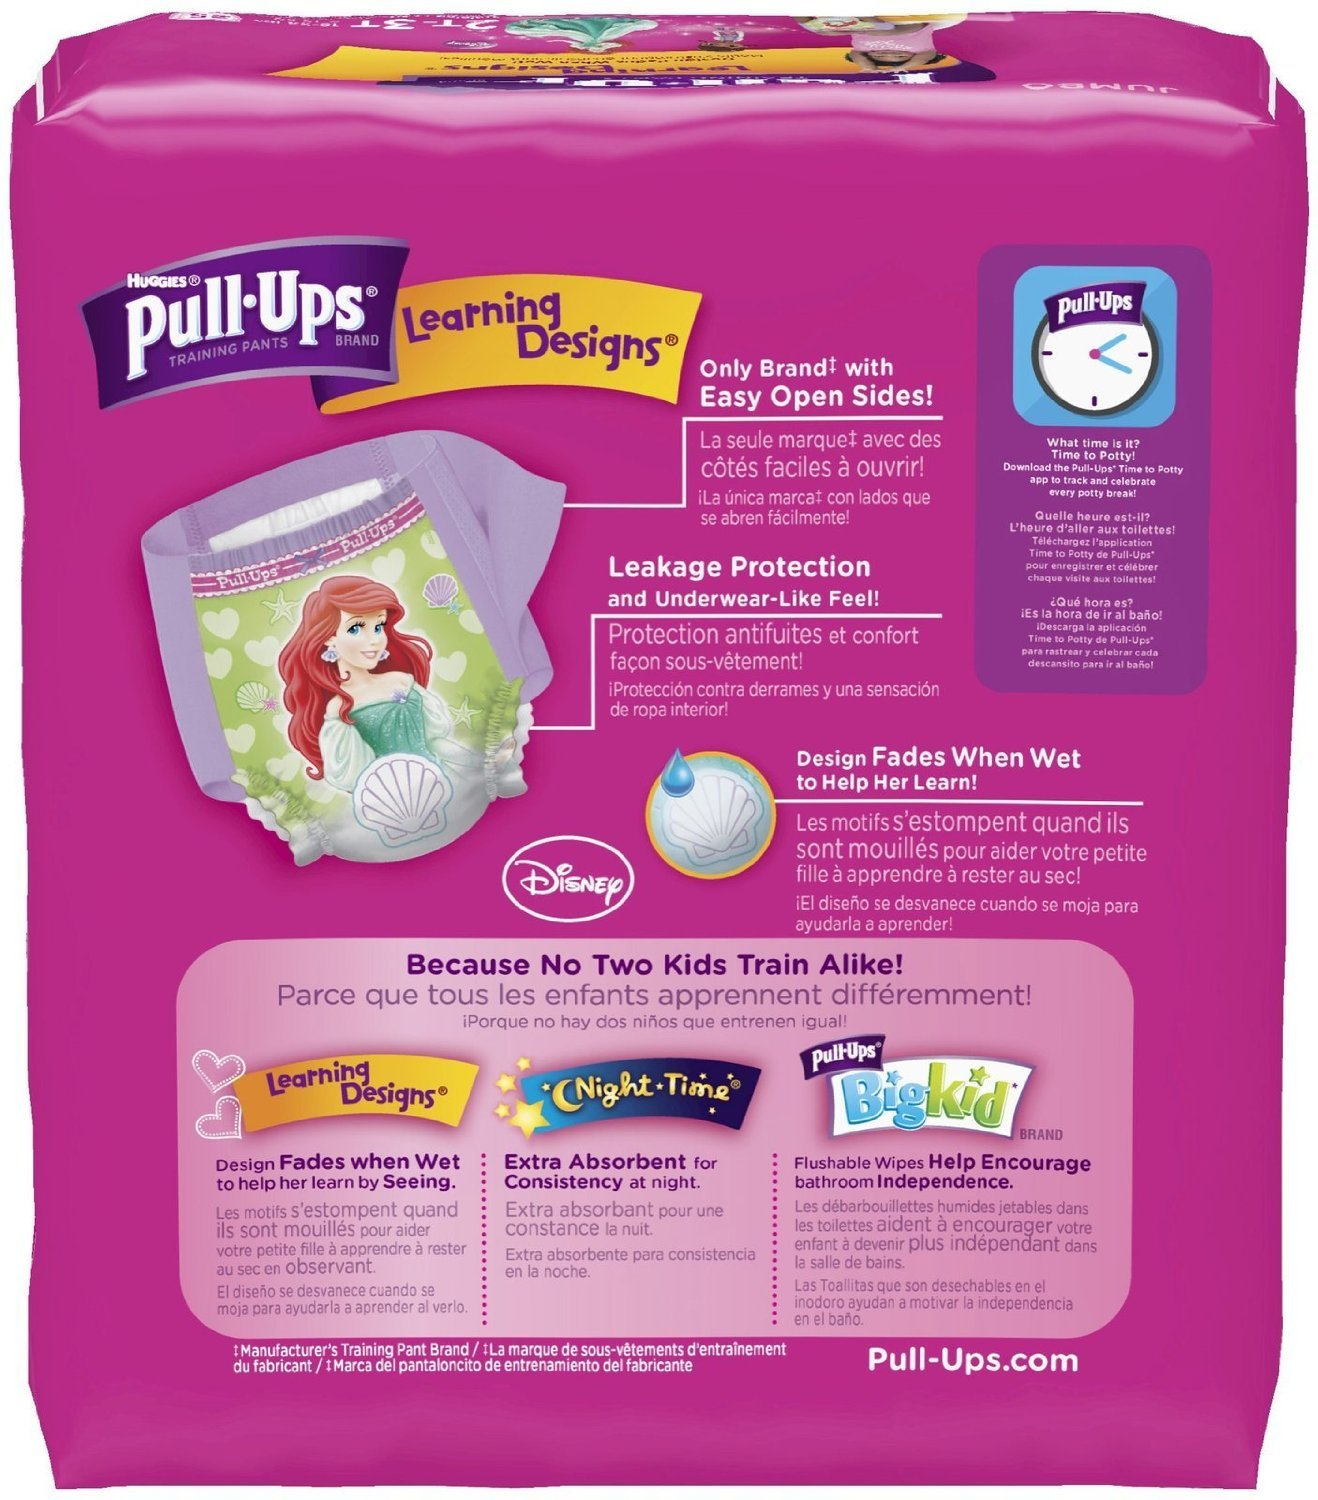 Amazon.com: Huggies Pull-ups Training Pants - Learning Designs - Girls - 2t-3t - 25 Count: Health & Personal Care